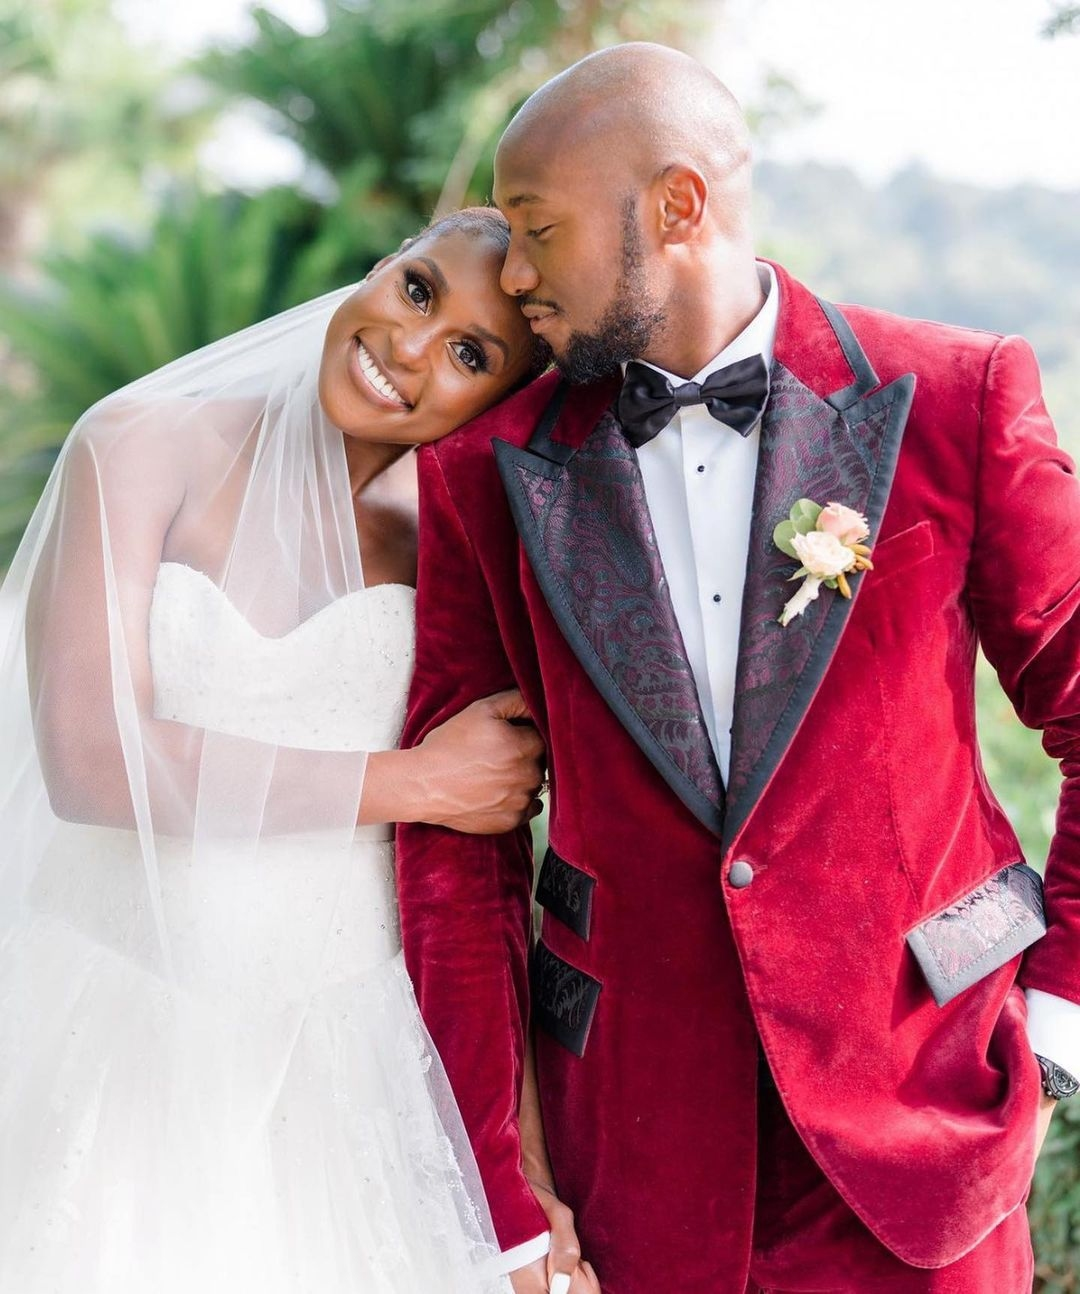 American Actress Issa Rae marries Businessman Louis Diame in intimate ceremony 5